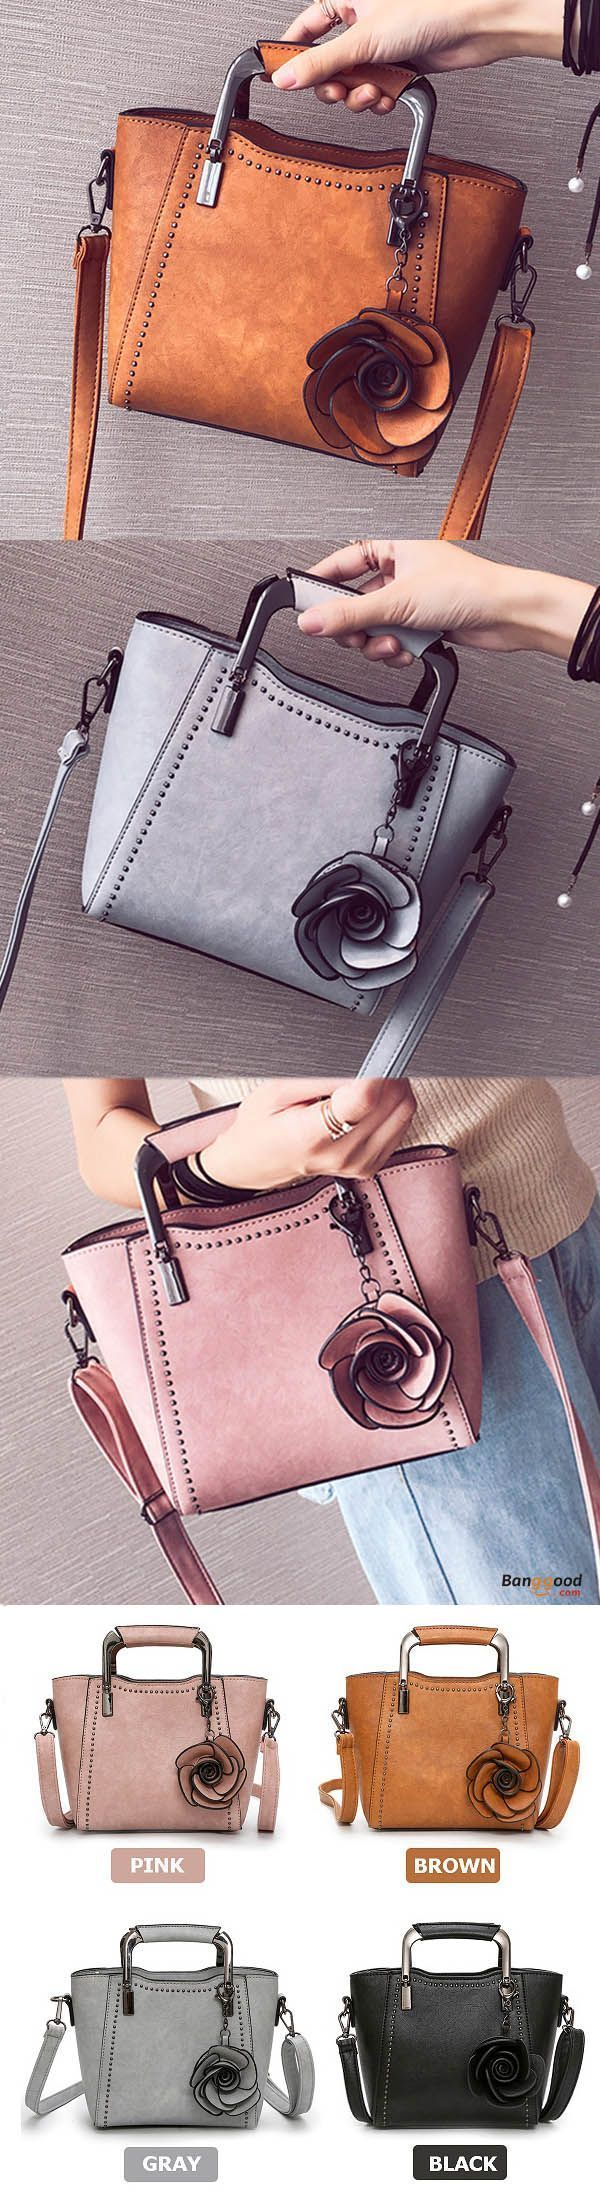 Women PU Leather Retro Rose Tote Bag Handbag Shoulder Bag Crossbody Bag. Designed, fashionable, elegant, for office, shopping, casual, party, travel, womens bags, shoulder bags, handbags, crossbody bags. Small size, large capacity. Get the look! #womenhandbags